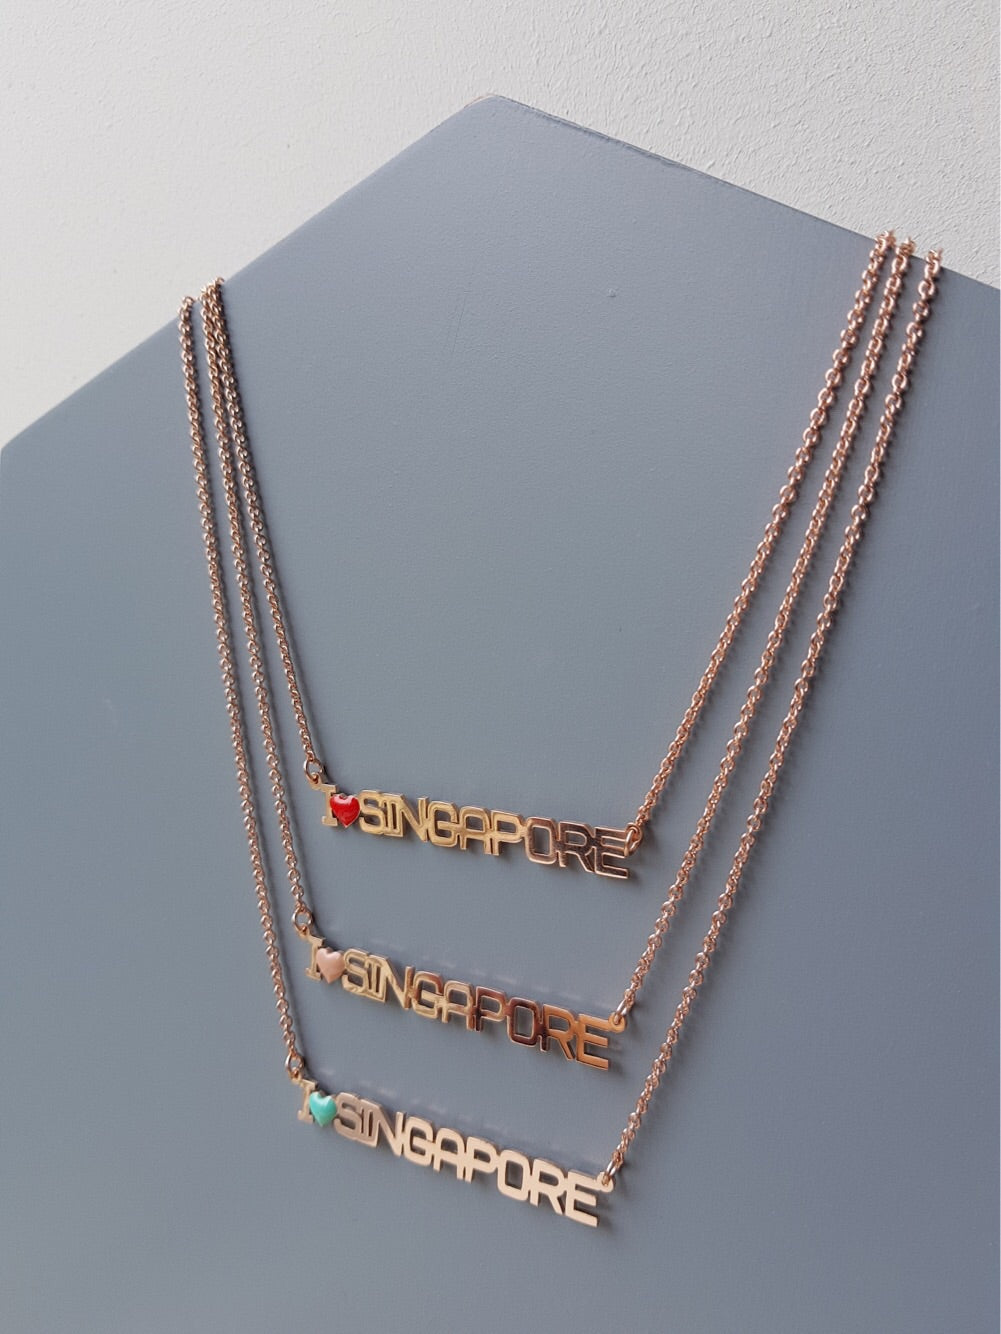 I Love Singapore Necklace (Pink Gold Plating)